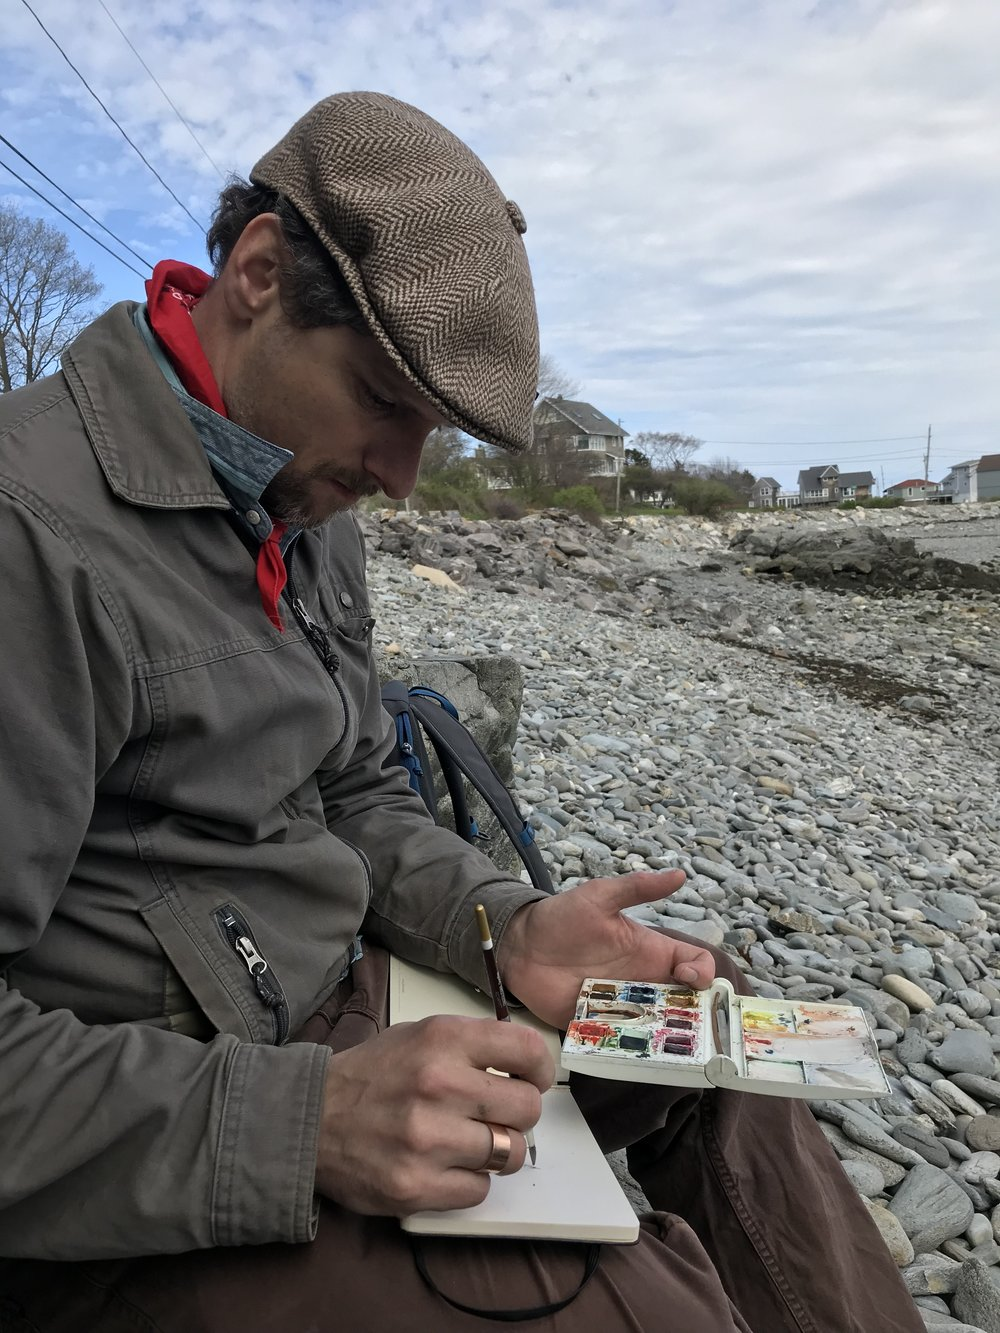 Painting on Peaks Island, Maine. Photo by Joey Baker